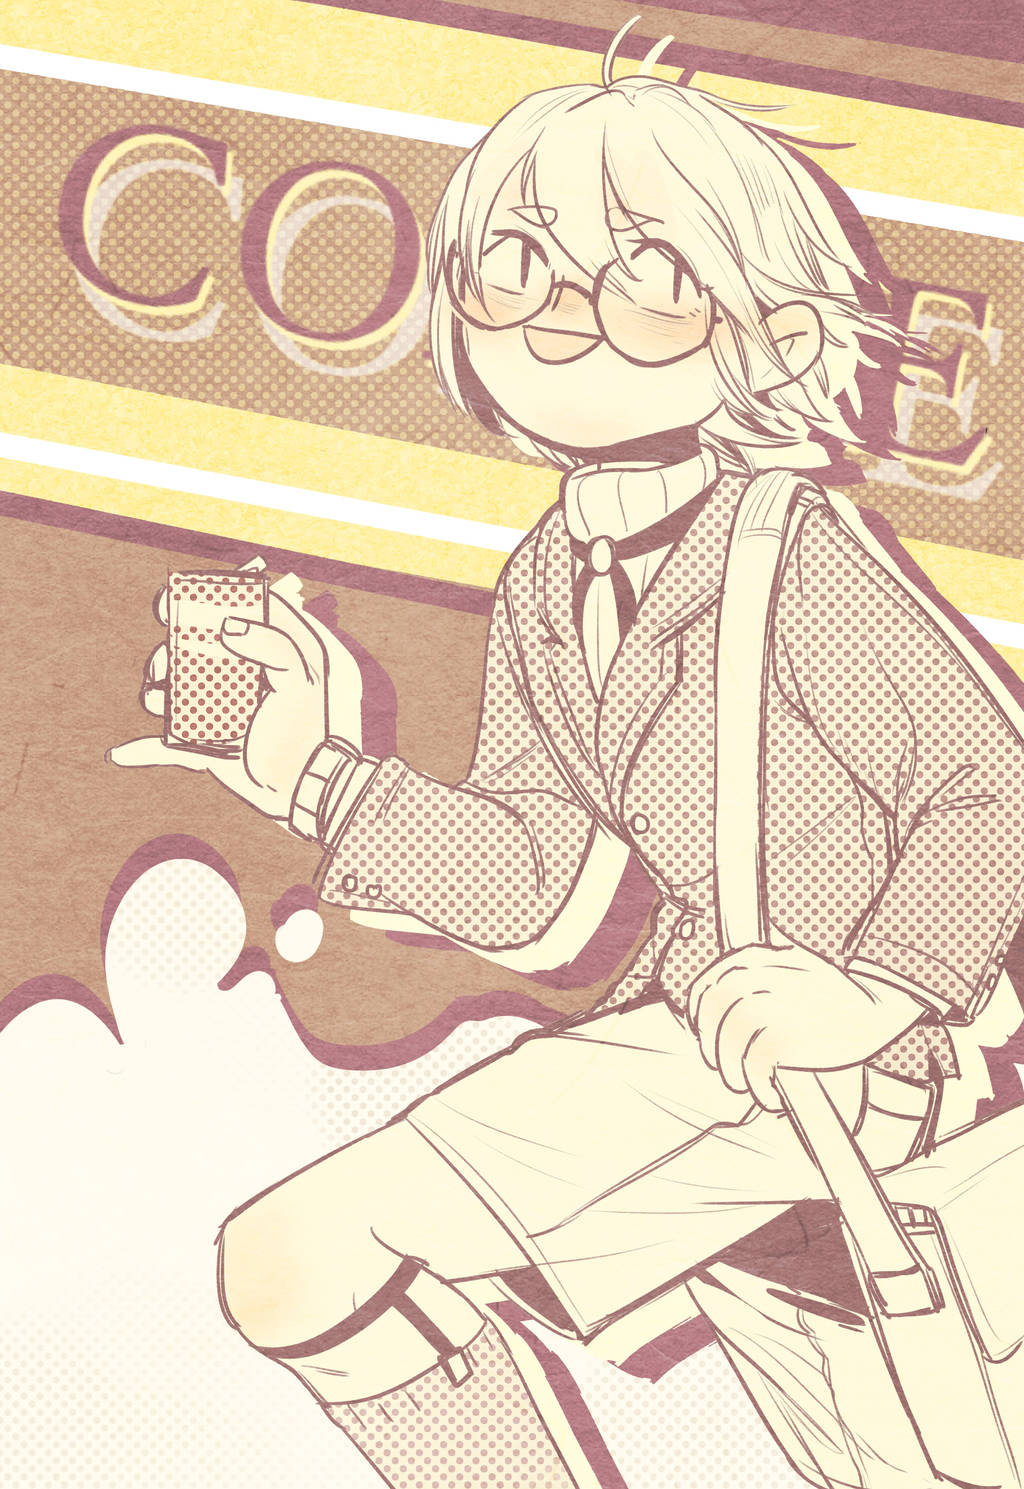 coffee? by Dr-Influenza